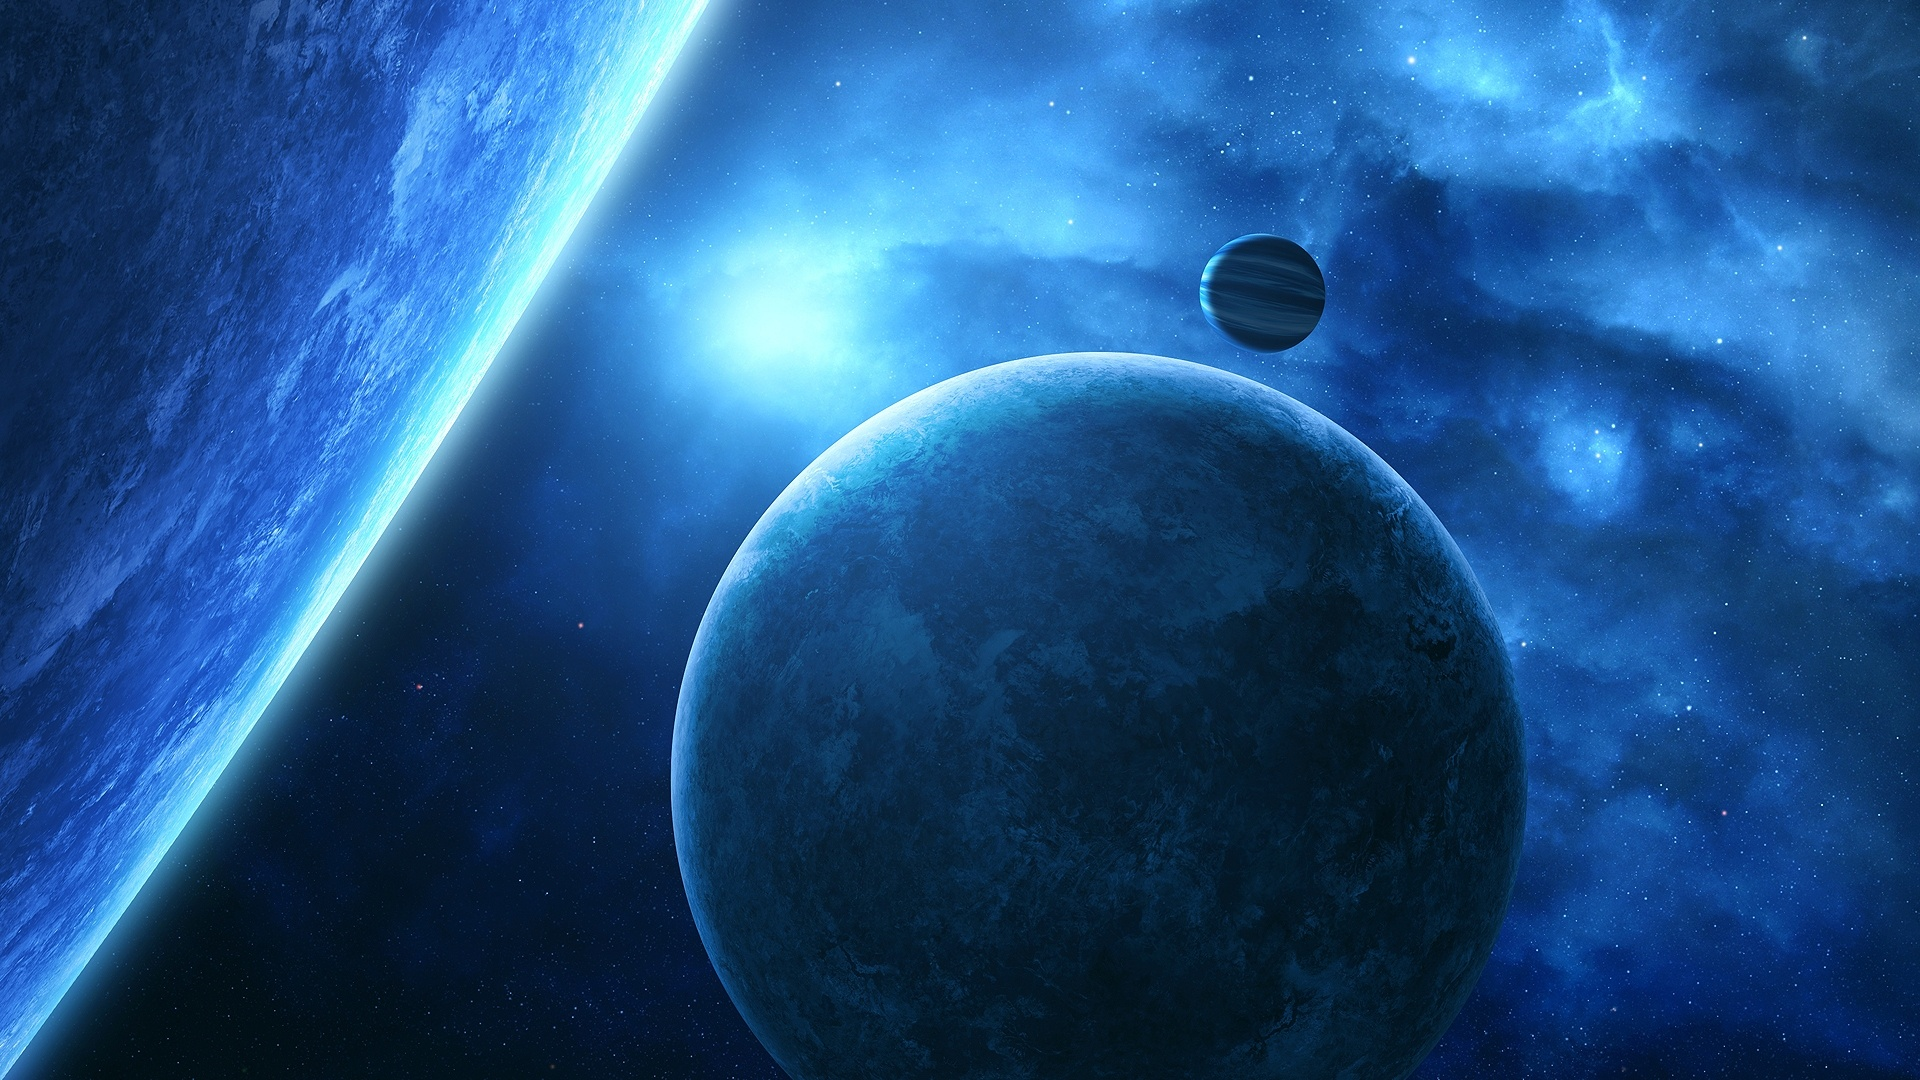 space planets moon - photo #14